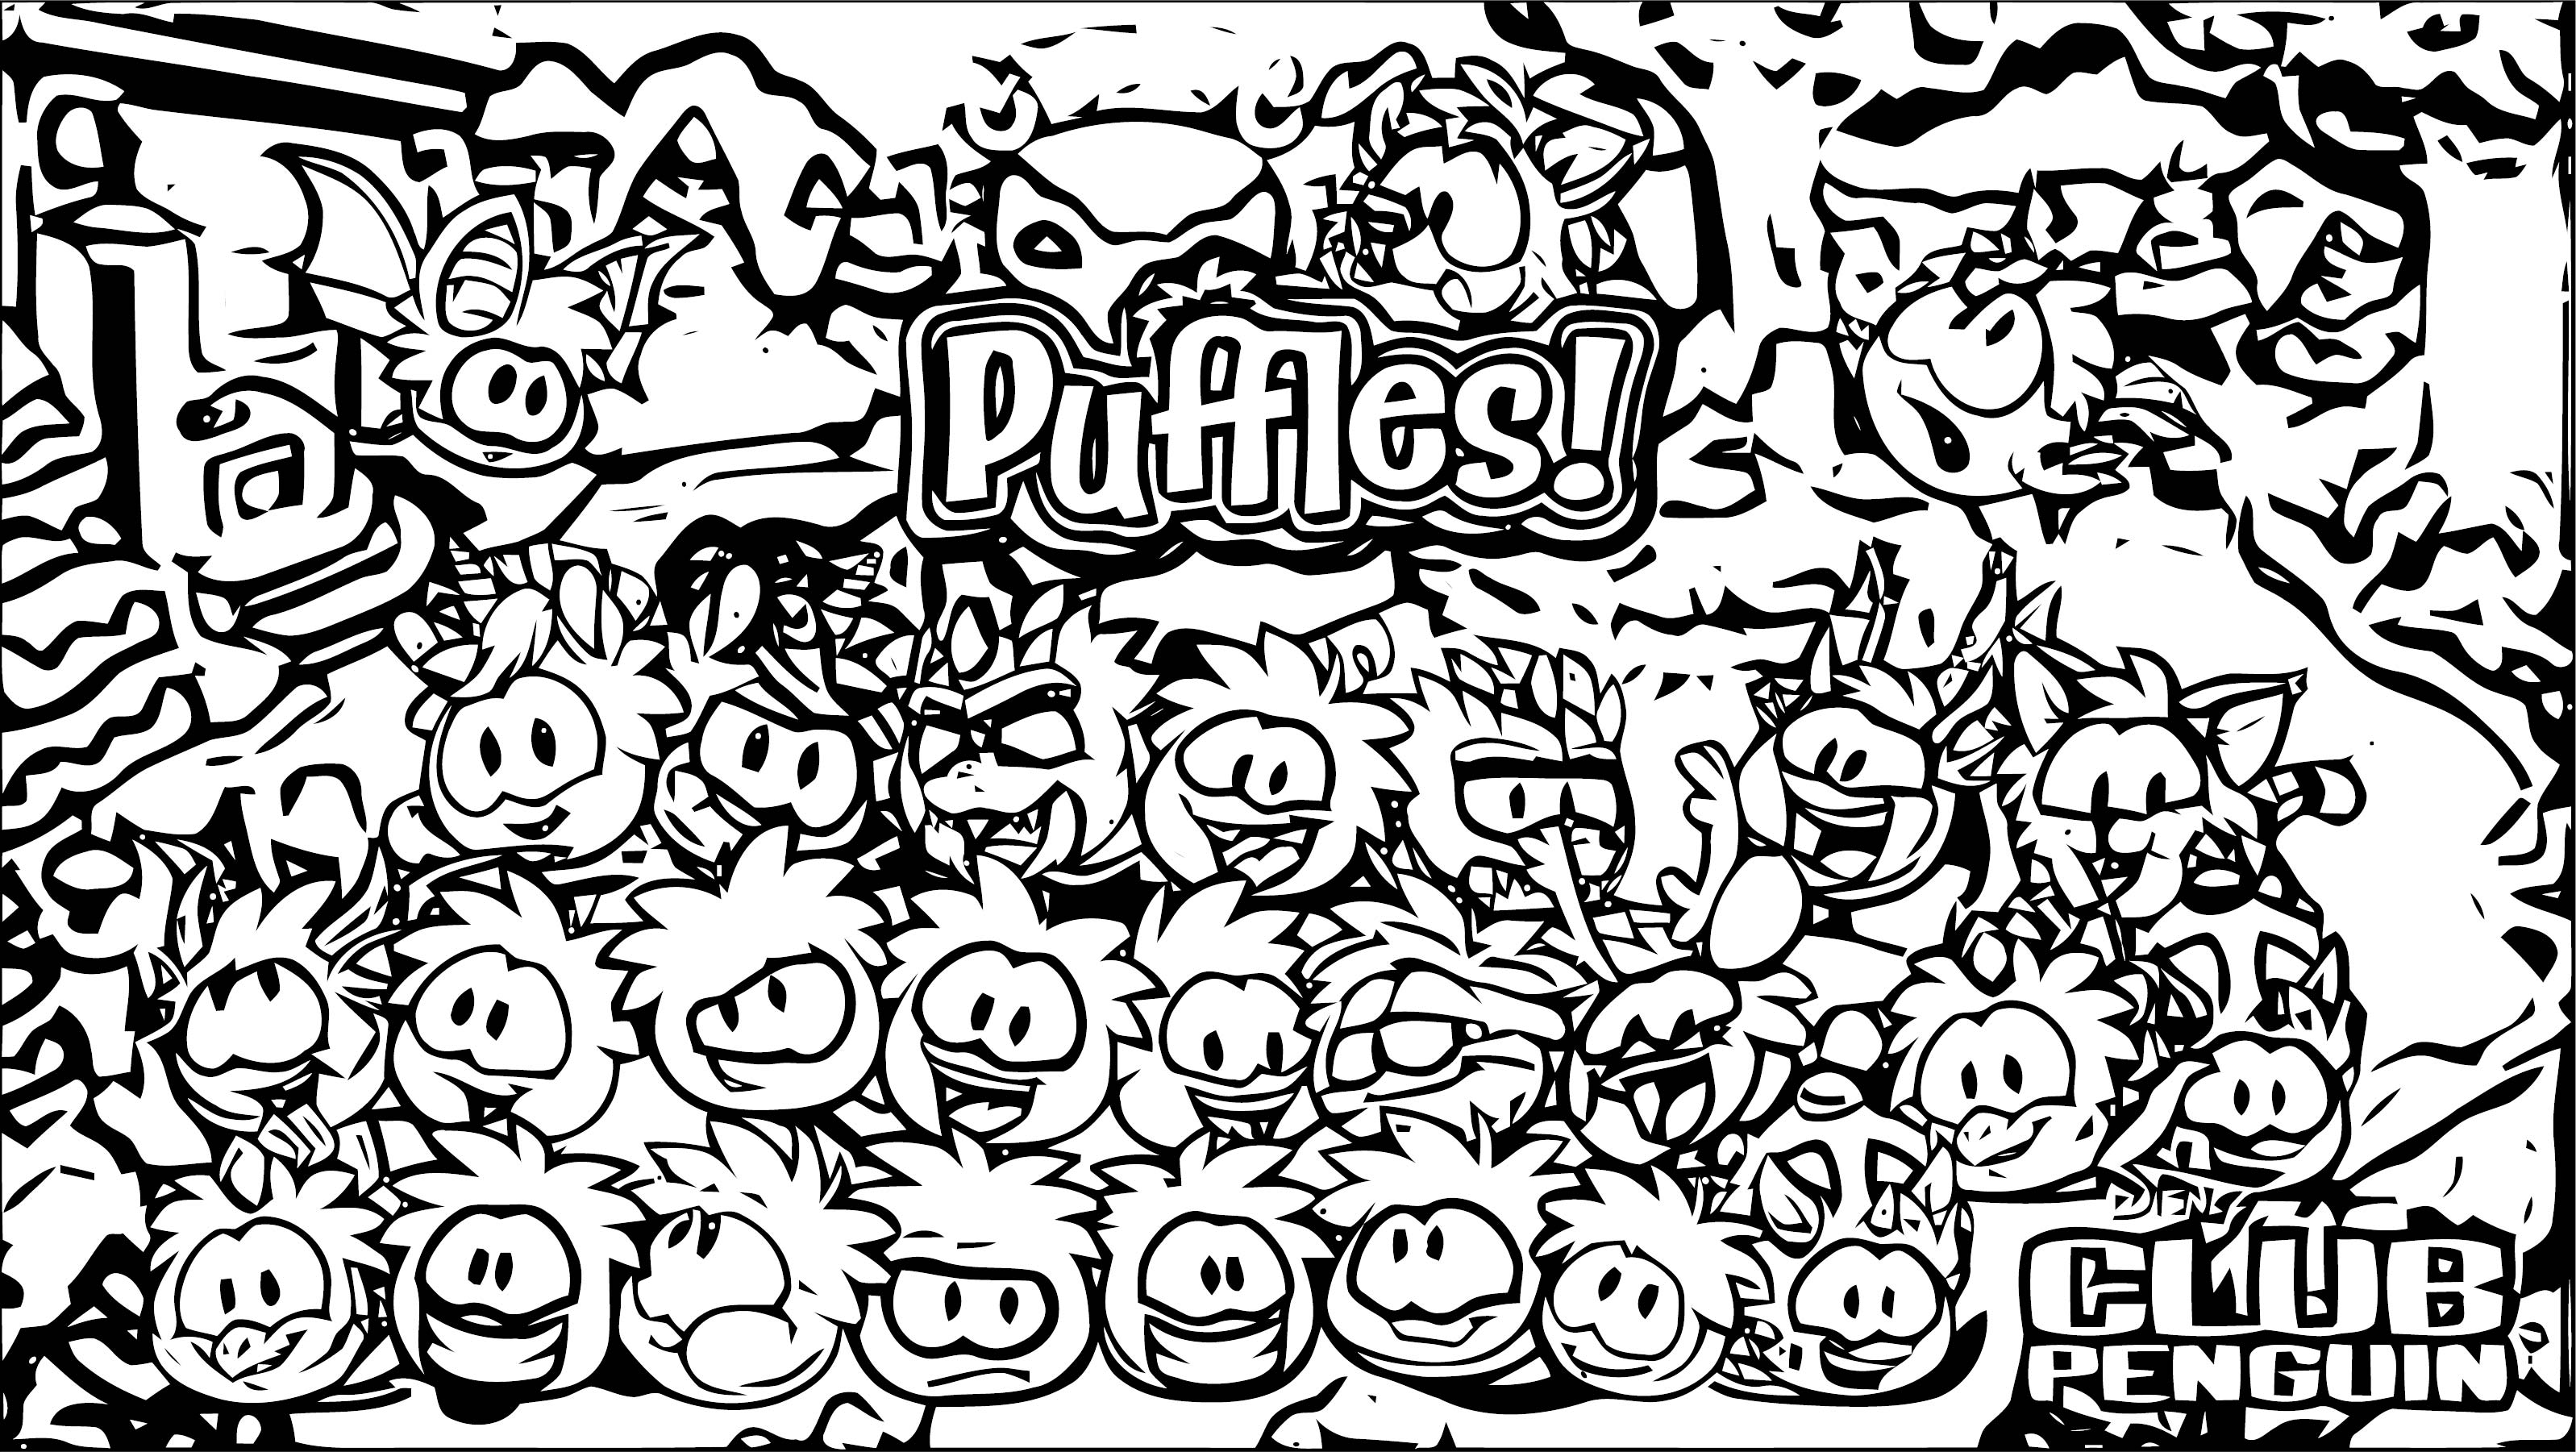 CP2014 Pufflesv2 Coloring Page